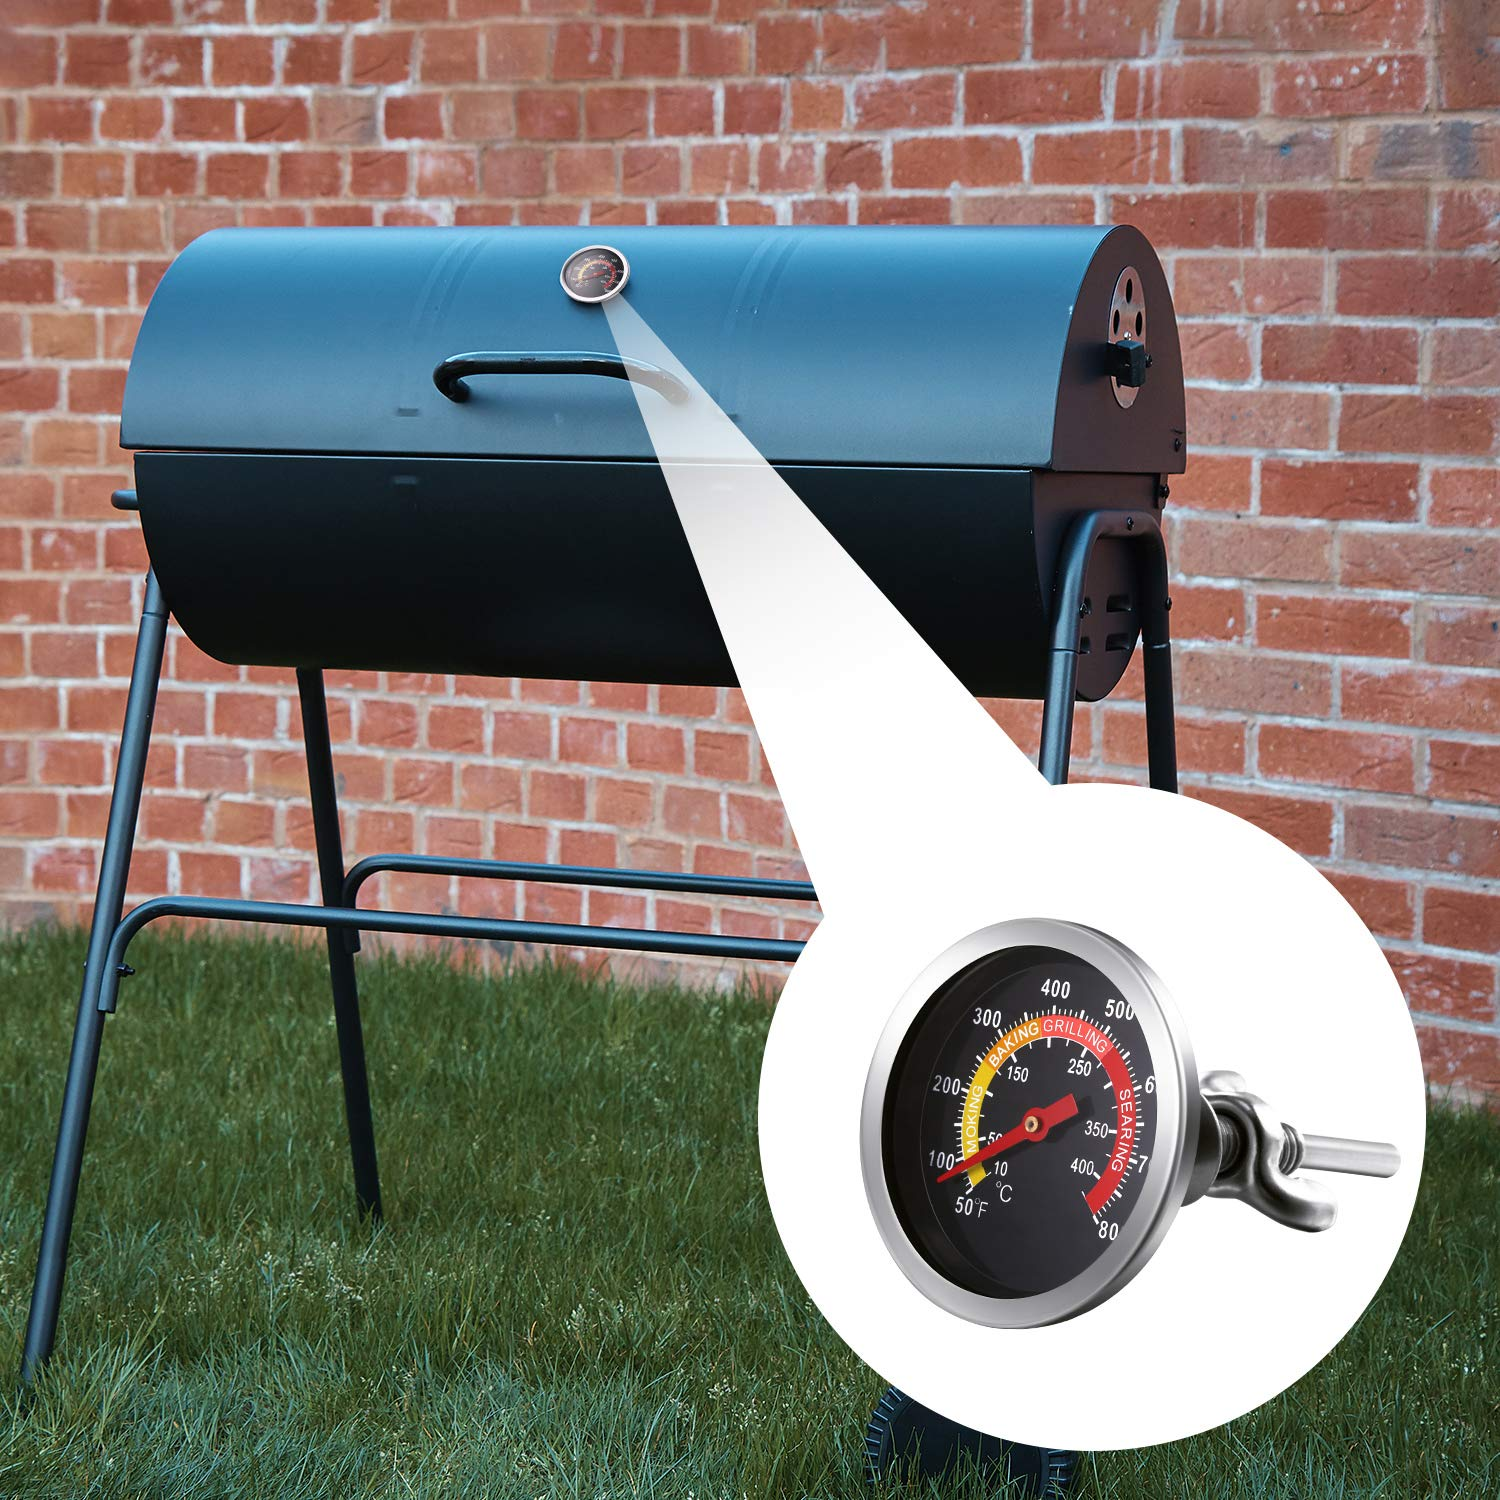 4 St/ücke 7,5 F/ü/ße BBQ Dichtung Raucher Grill Band Hochtemperatur Grill Dichtung 2 Zoll Messuhr Holzkohlegrill Thermometer BBQ Thermometer Manometer Holzkohlegrill 3 Zoll Stiel